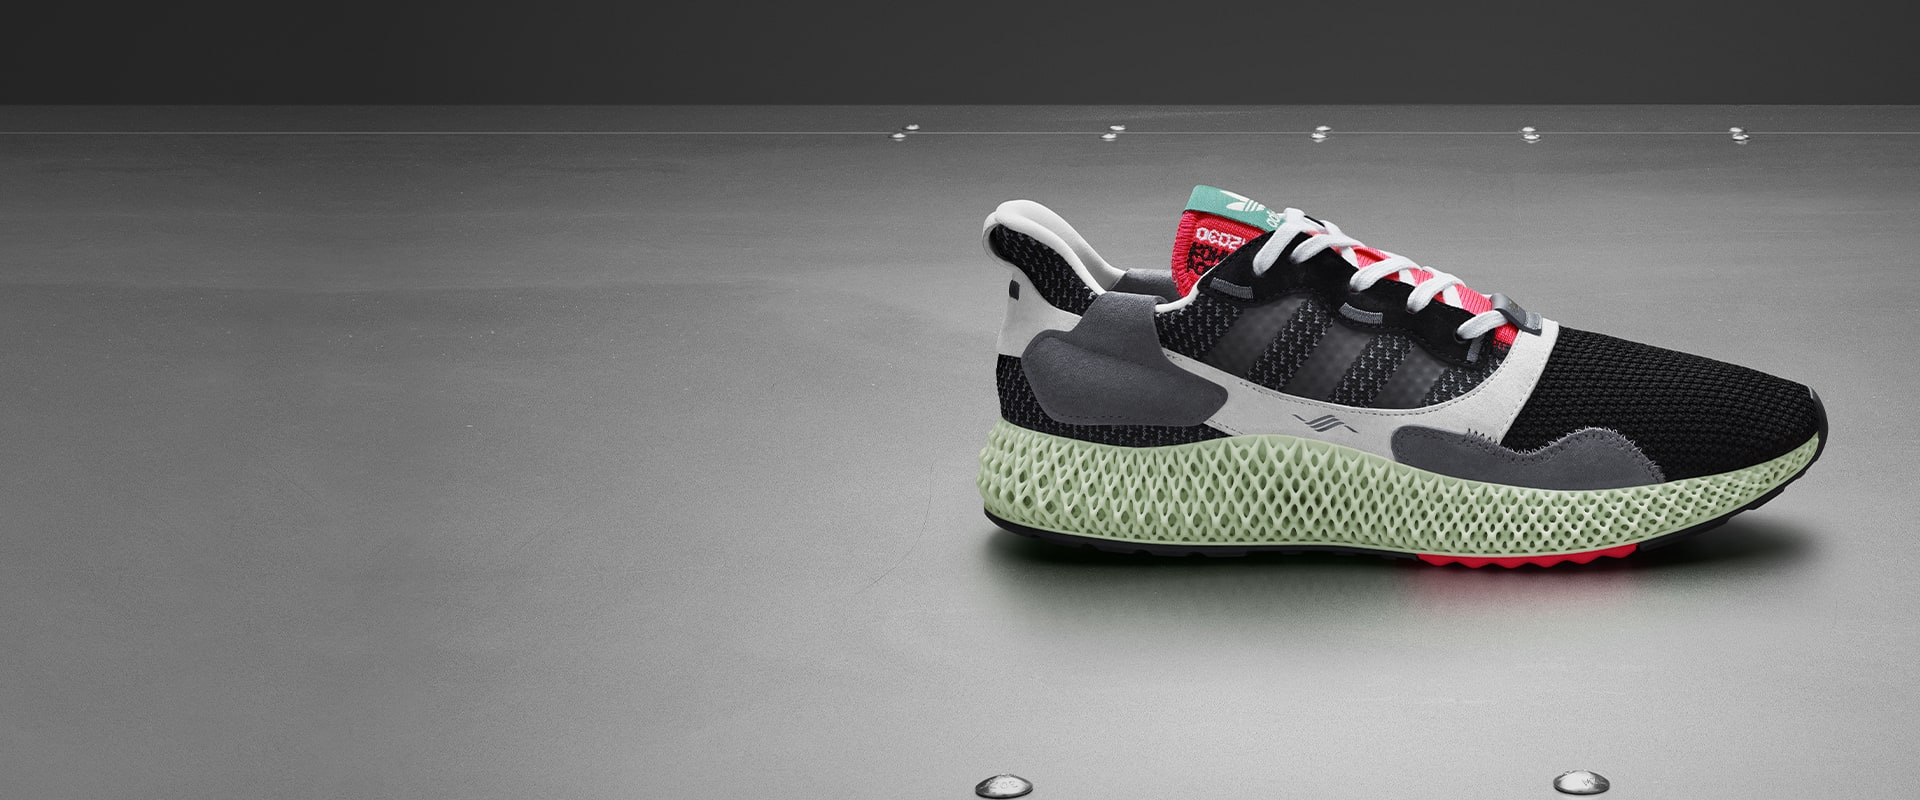 new style 273bb e6fb3 ZX 4000 4D  a futuristic interpretation of adidas heritage, arriving May  25th.